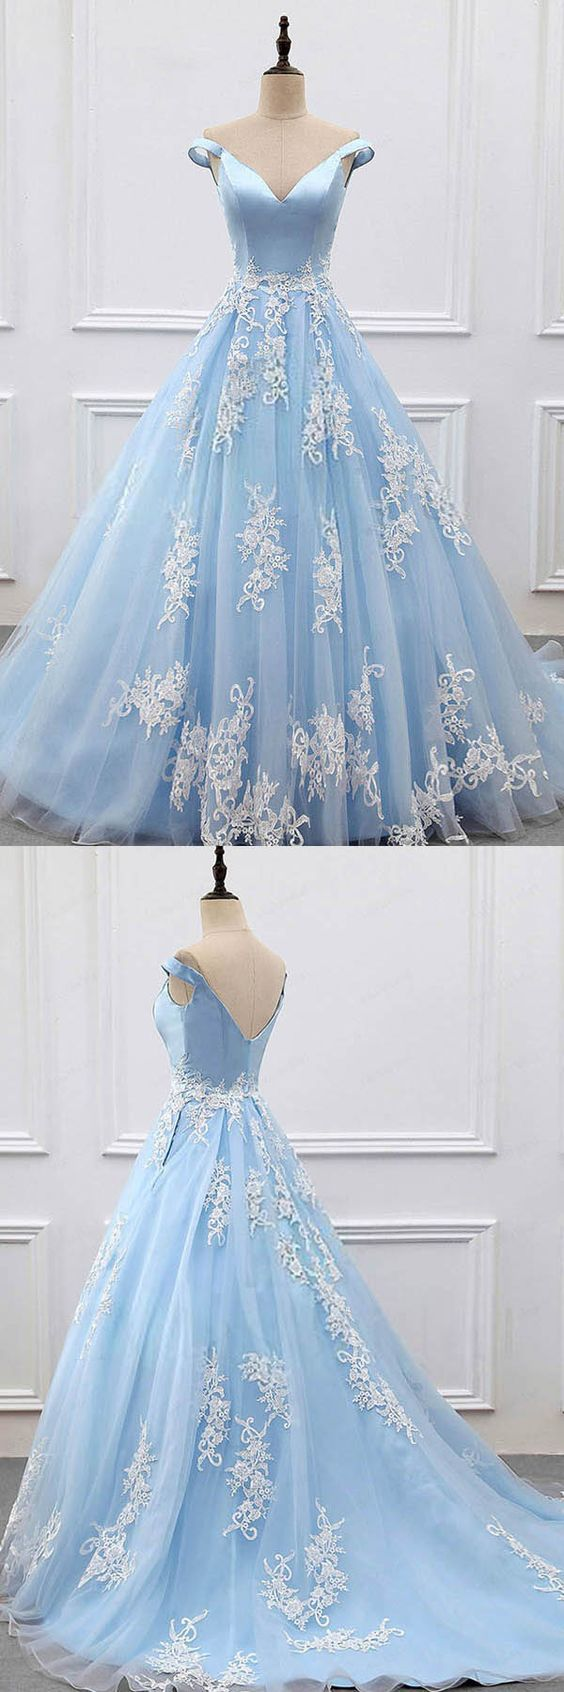 Ball gown offtheshoulder court train blue tulle prom dress m